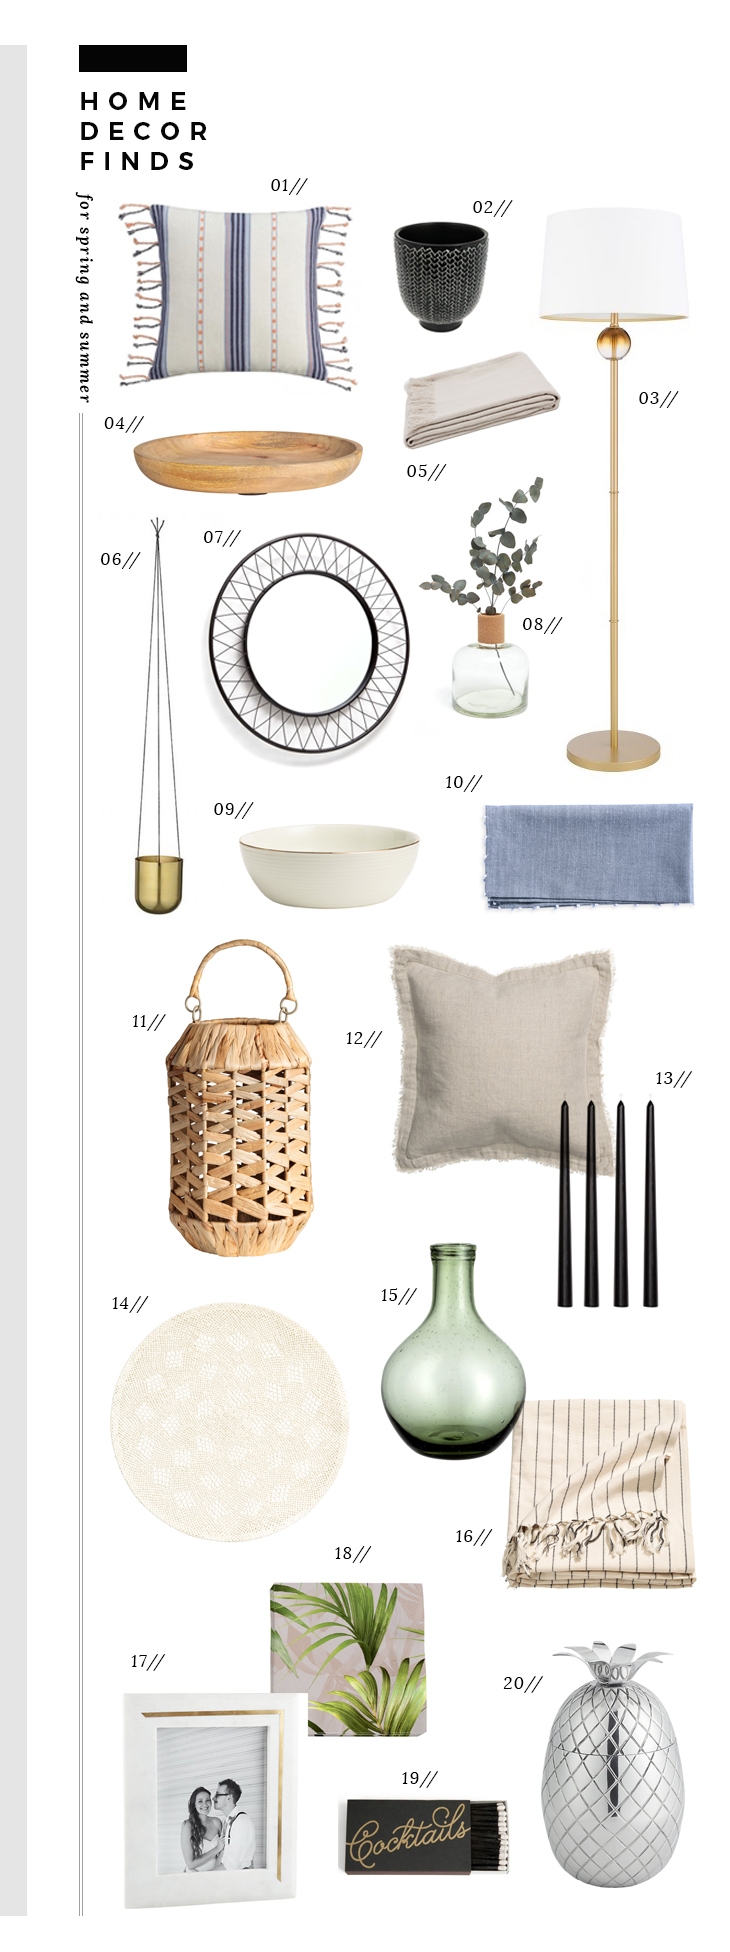 home decor finds for spring and summer